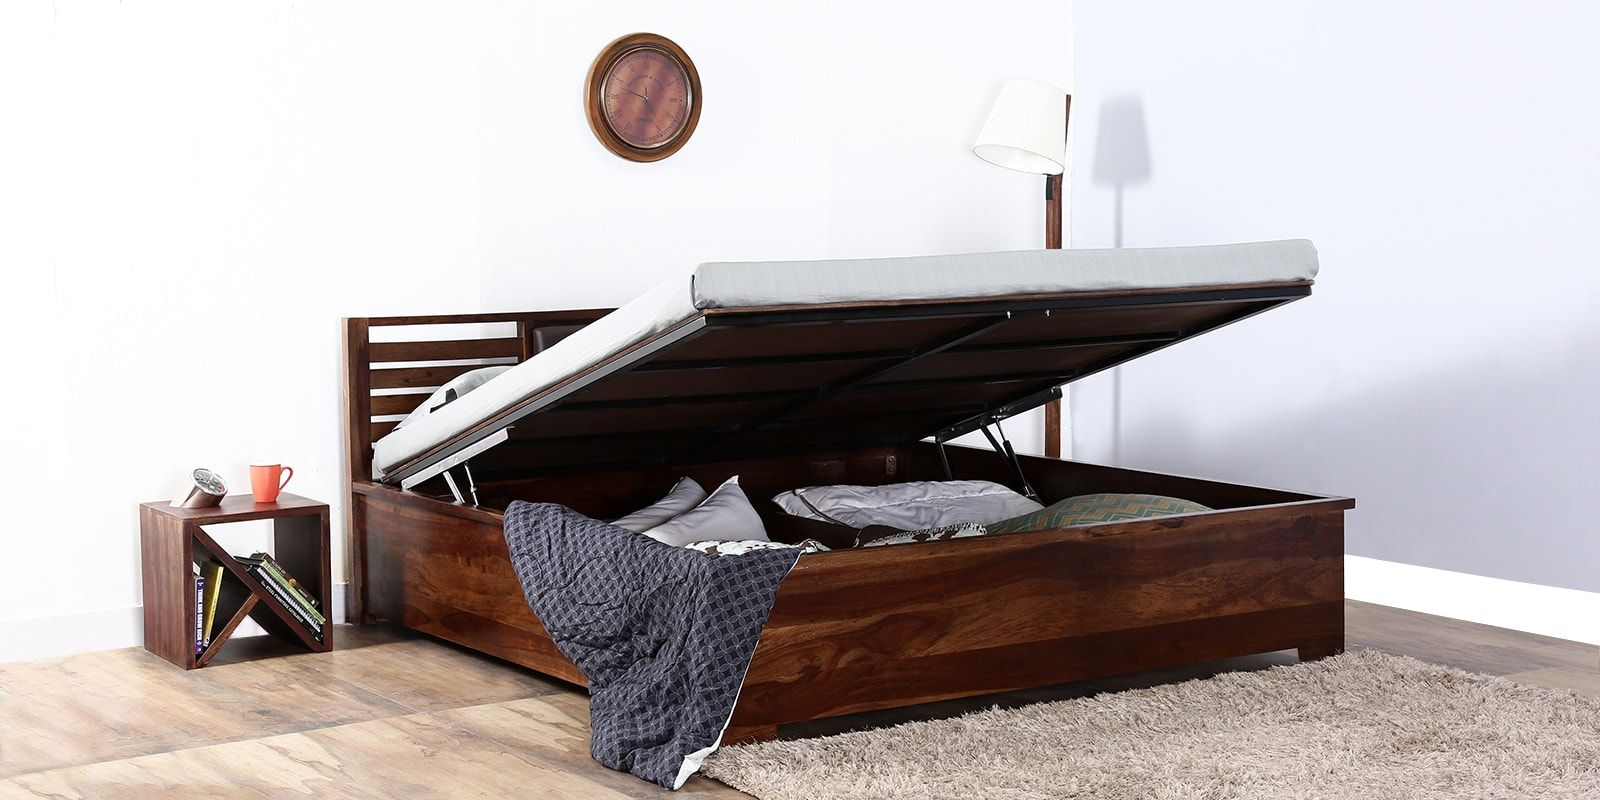 Best Kelso Hydraulic Queen Size Bed With Storage In Teak Finish 400 x 300